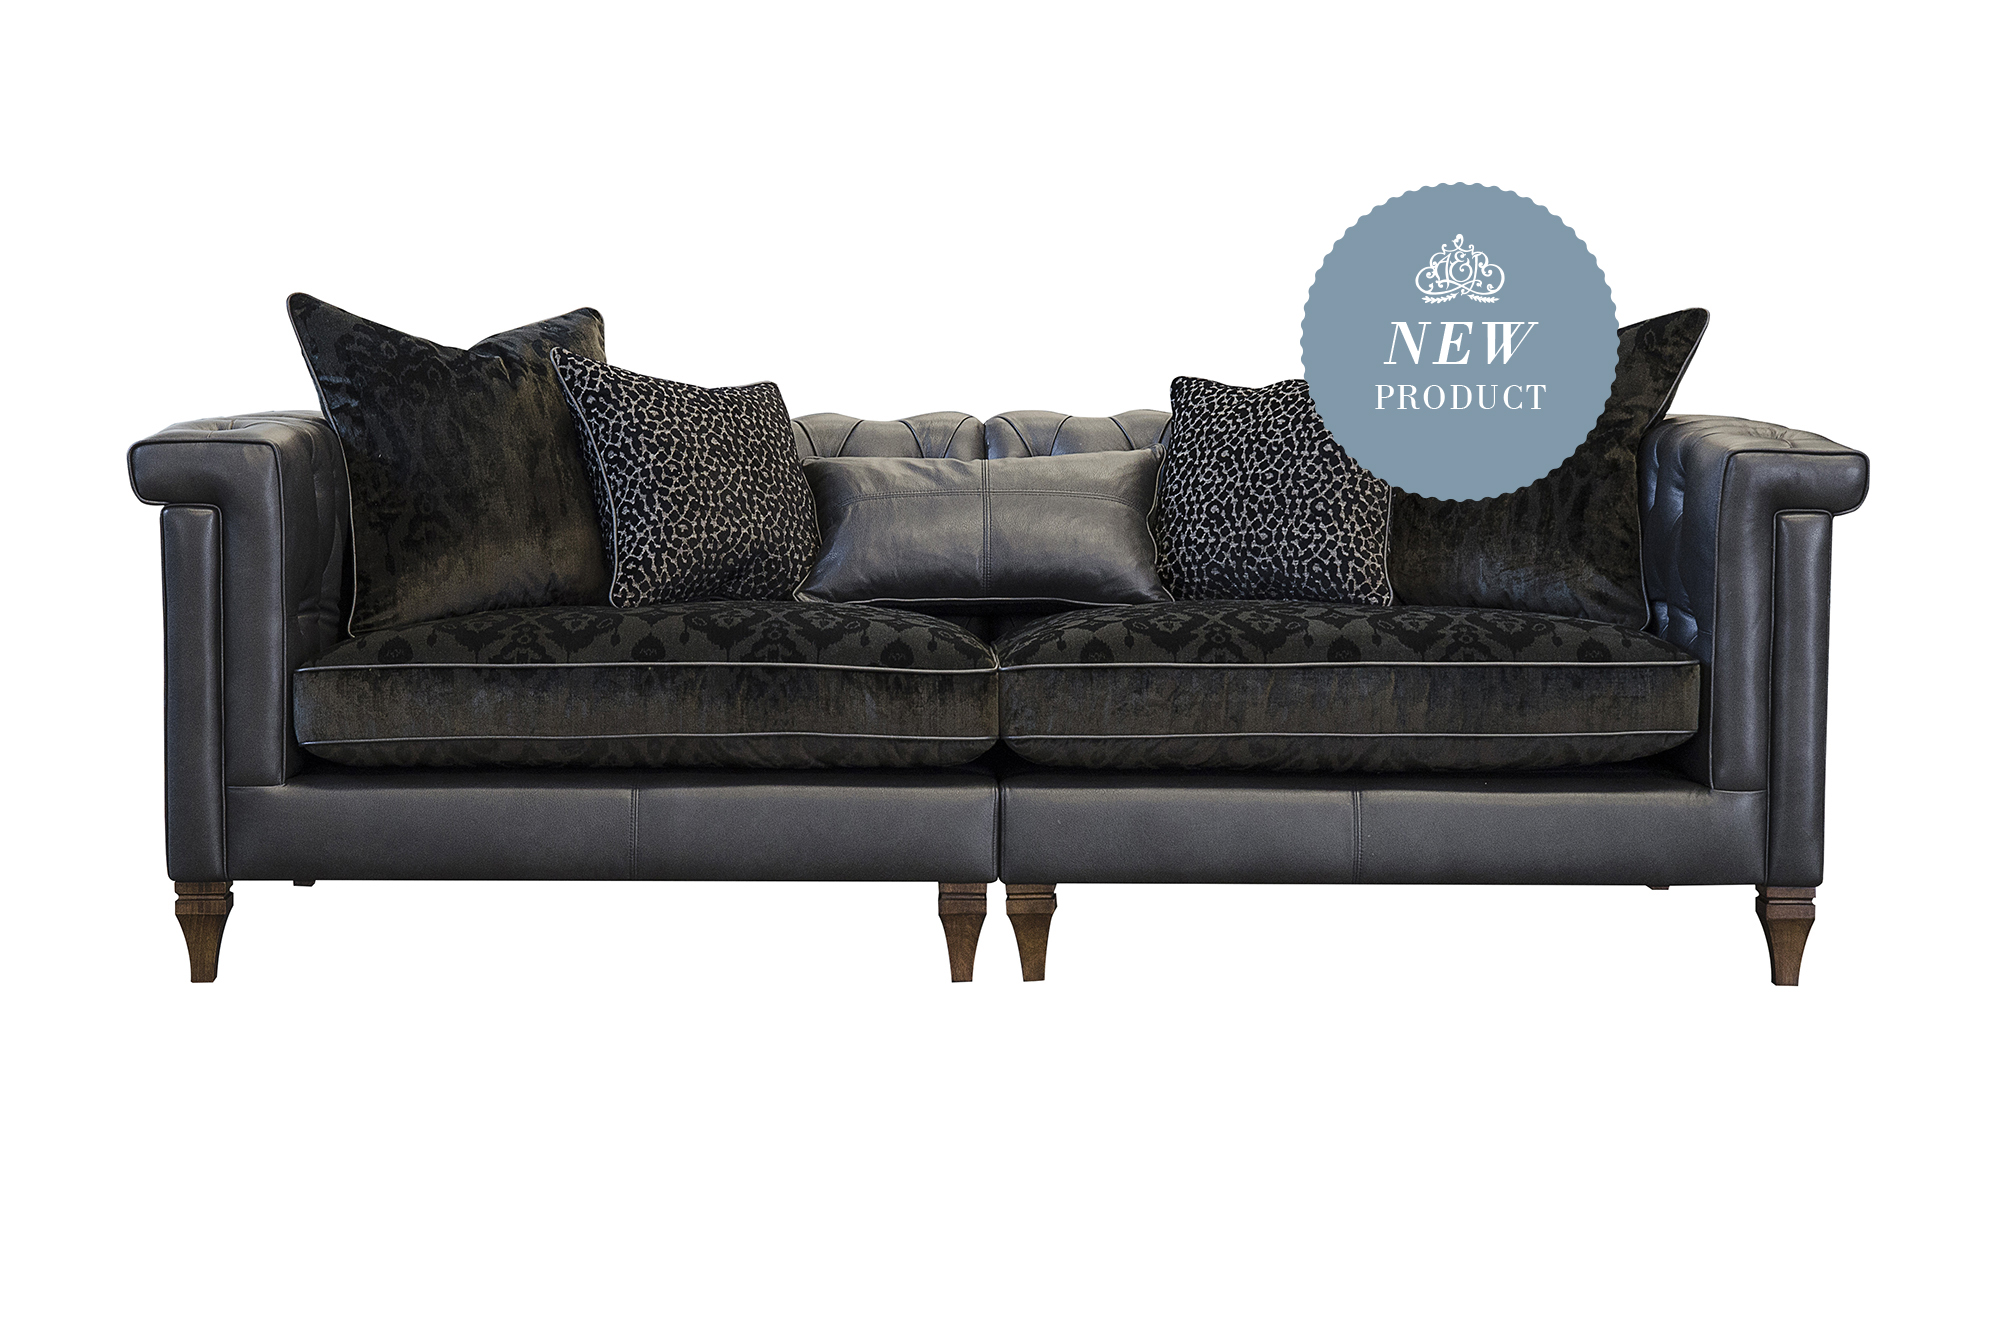 Isabel Maxi Split Sofa Shown in Tote Night Leather with Fabric Option 3